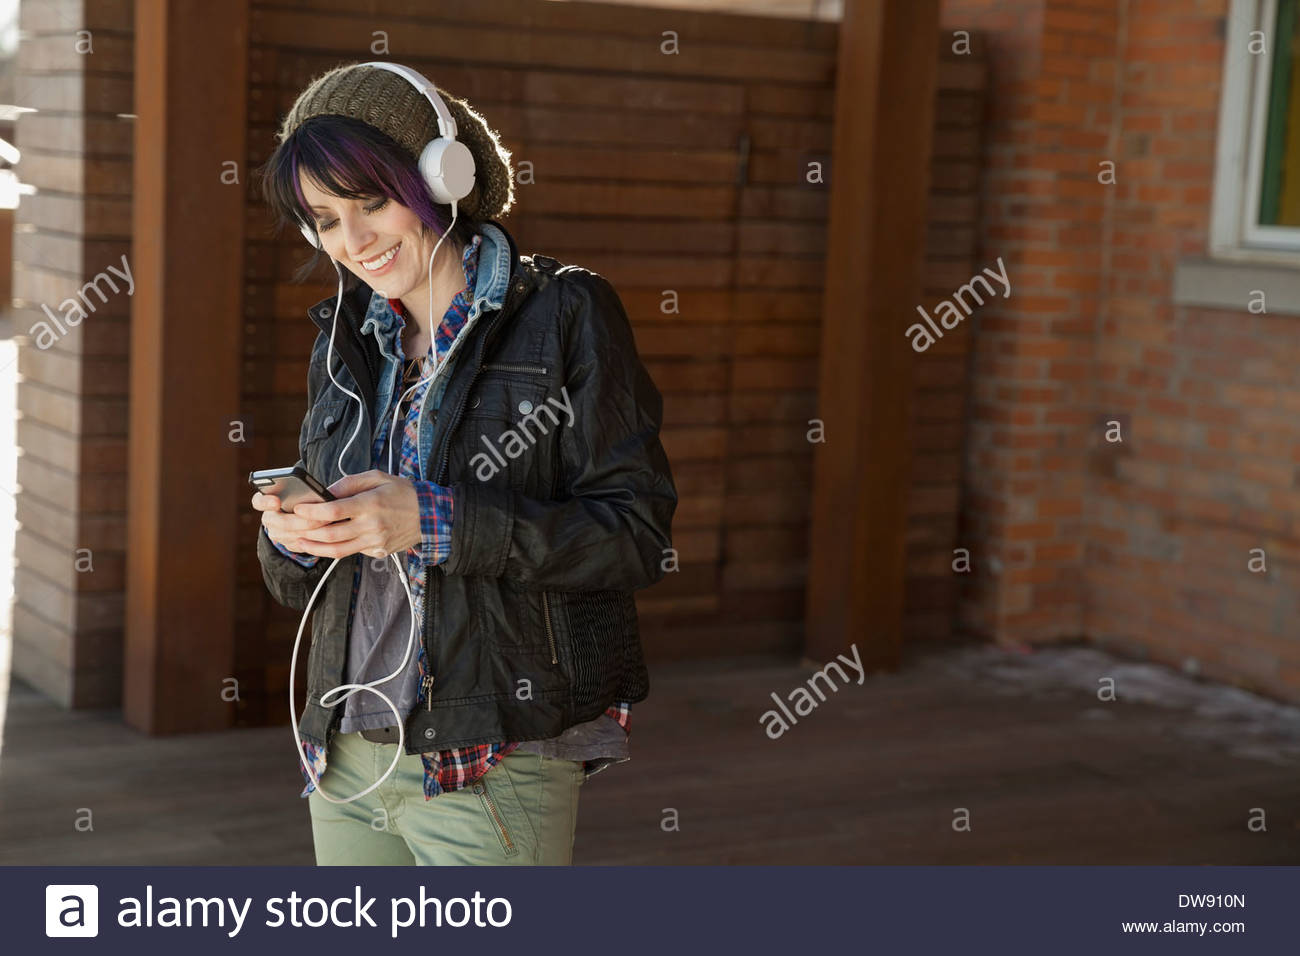 Smiling woman listening to music on headphones outdoors - Stock Image